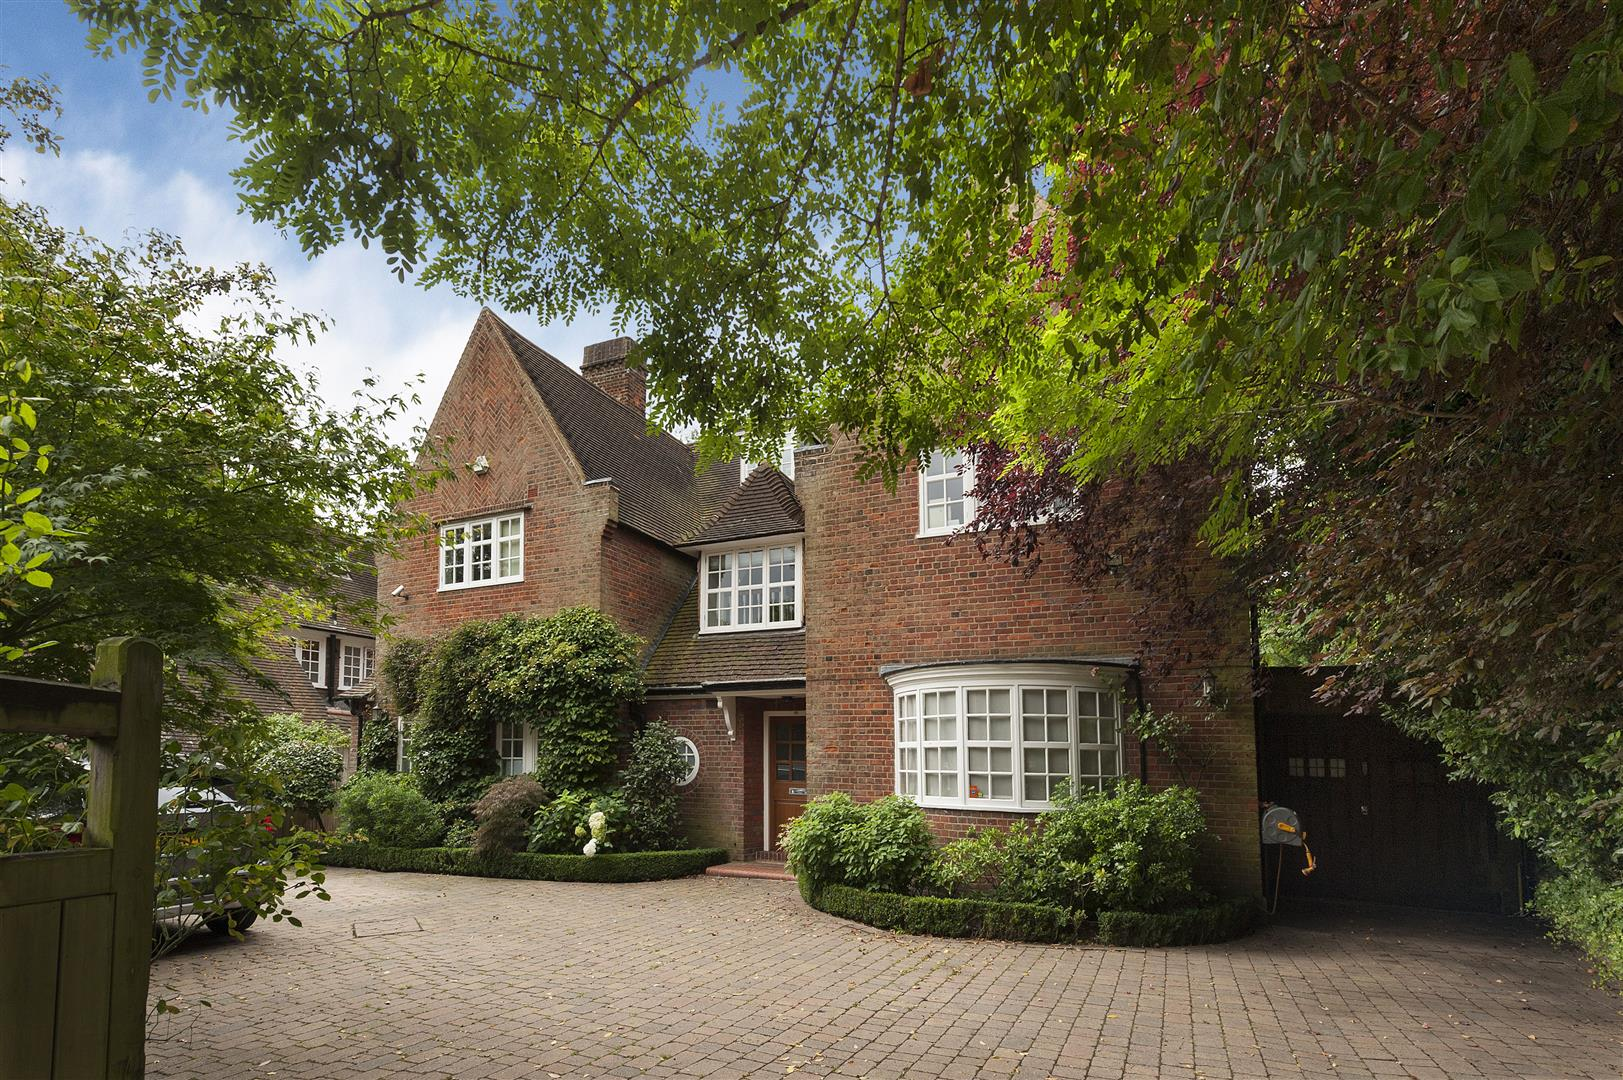 5 Bedrooms House for sale in Hampstead Way, Hampstead Garden Surburb, NW11